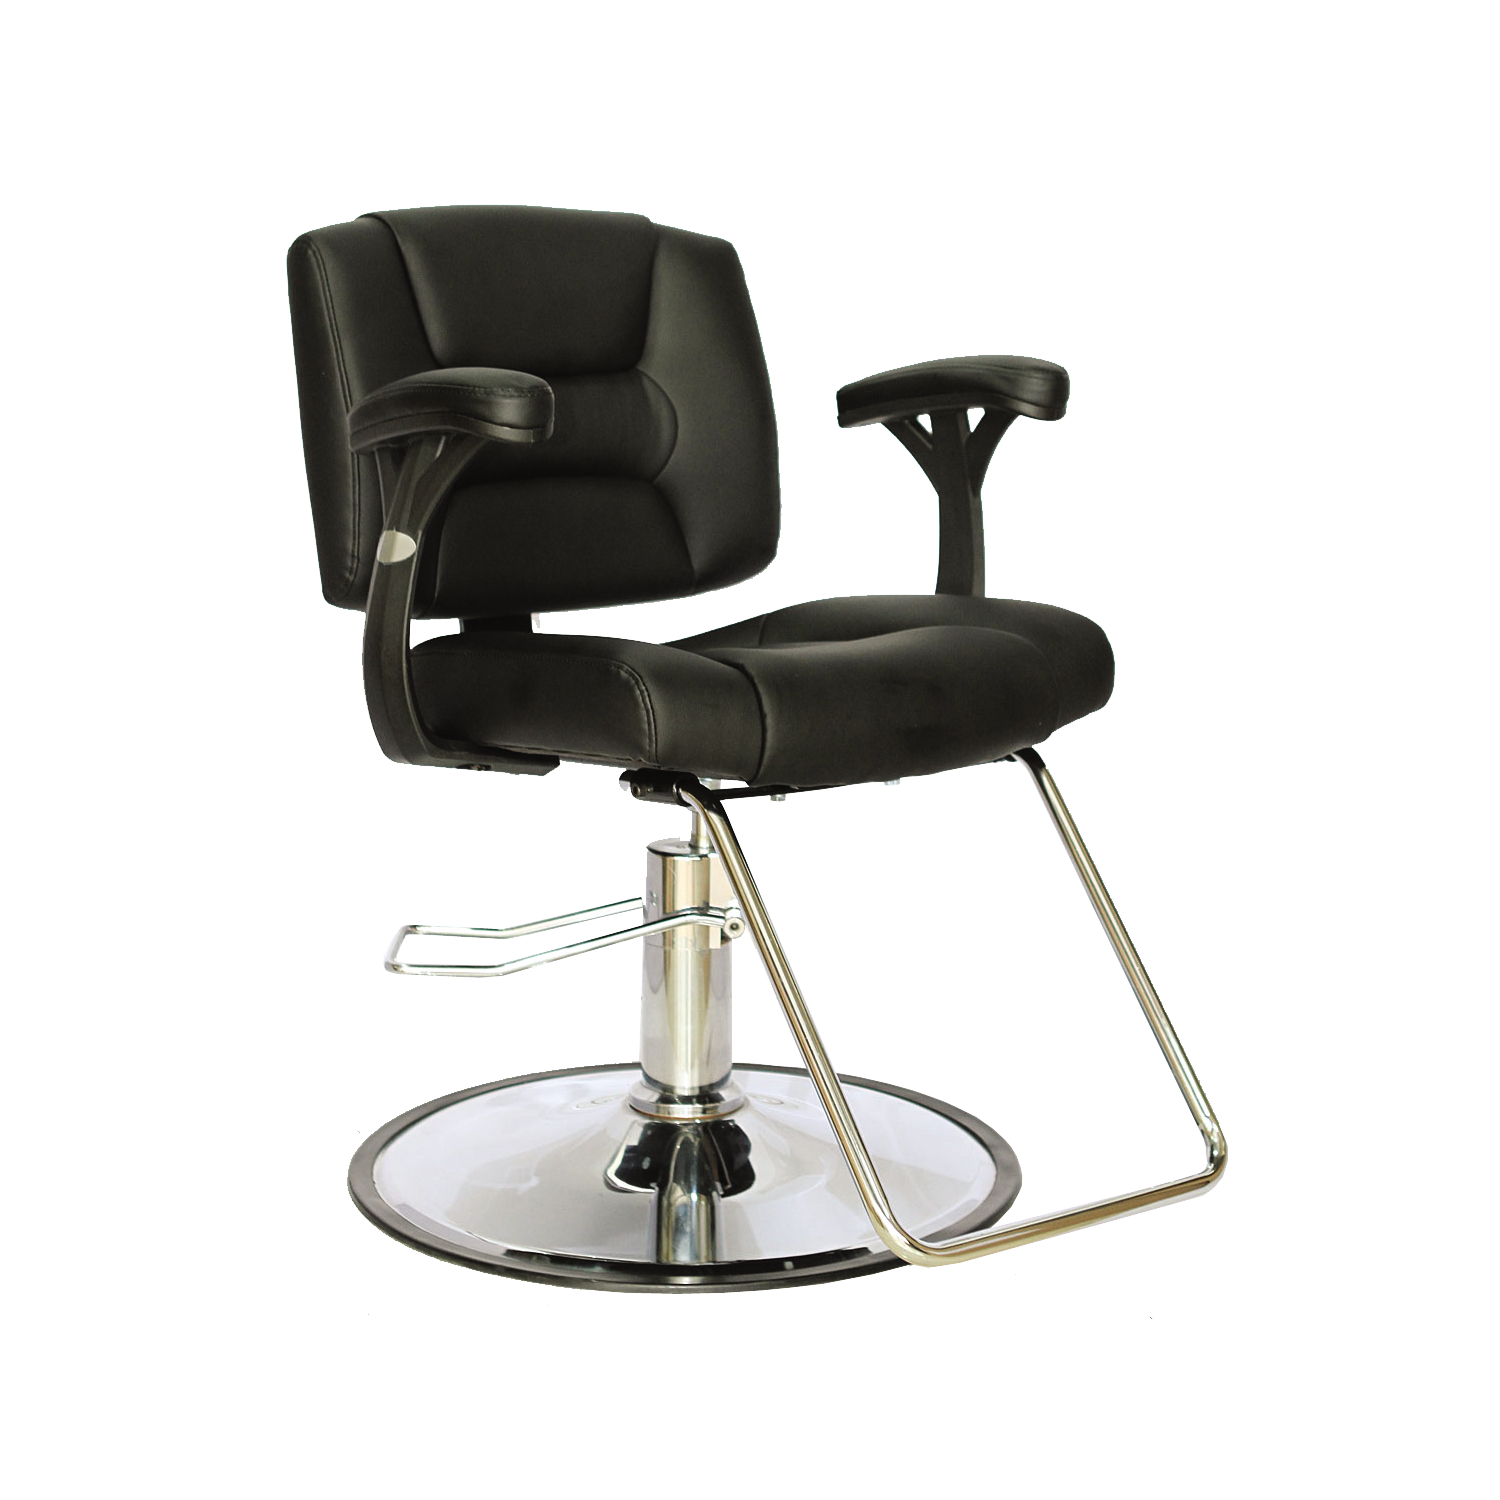 Awesome Hair Cutting Chair Rtty1 Com Rtty1 Com